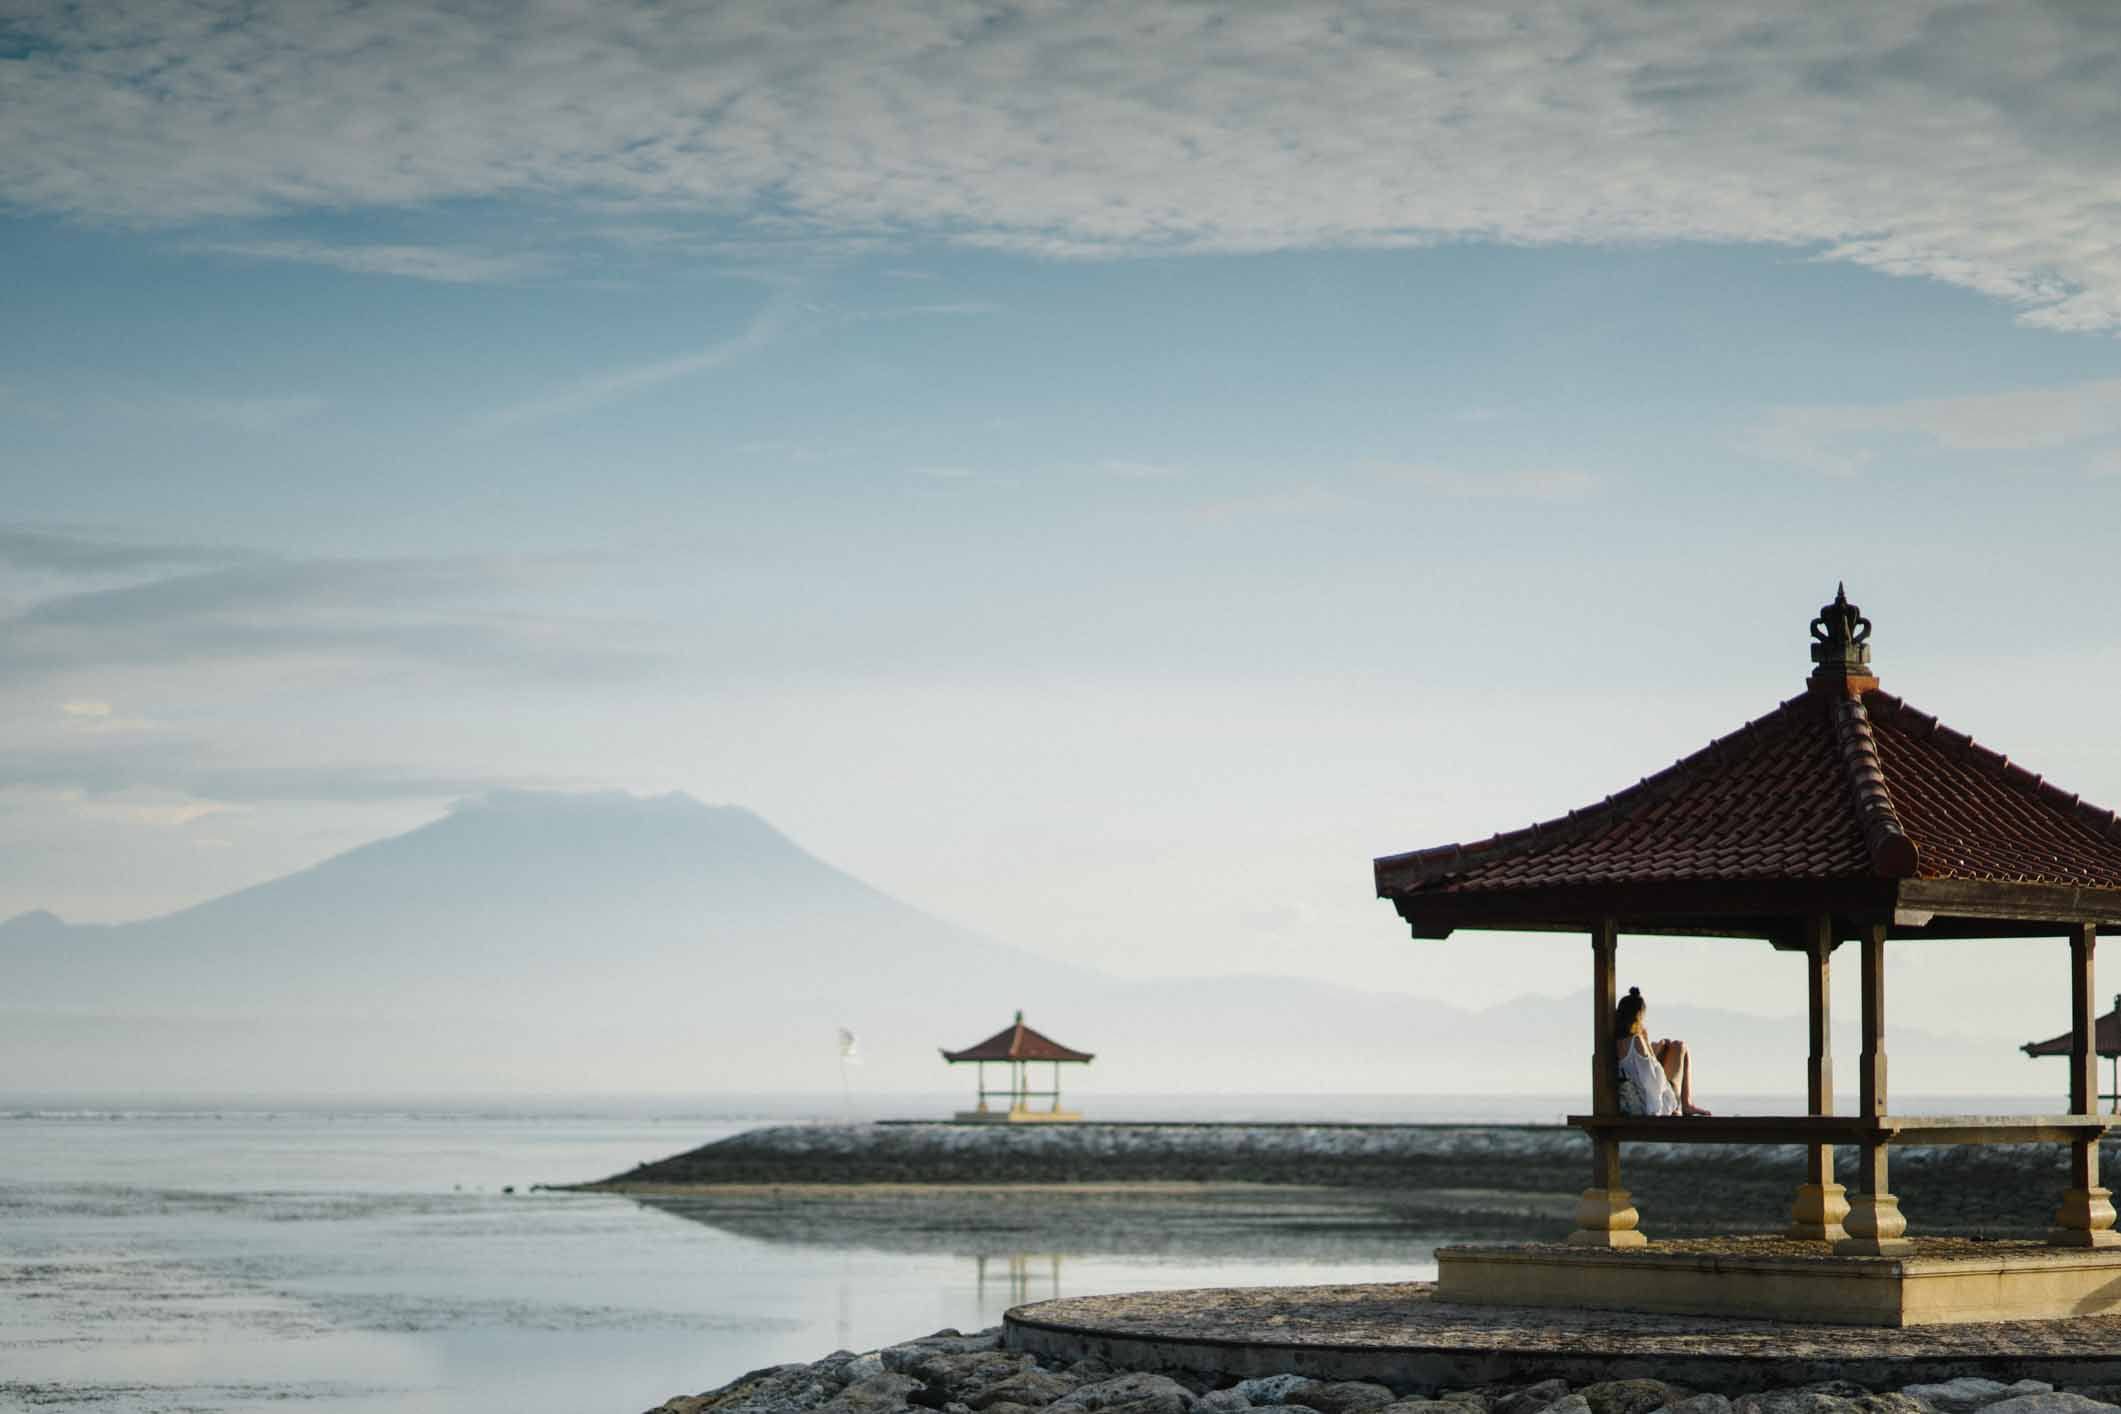 Amed Bali – A Complete Area Guide To Read Before Your Trip